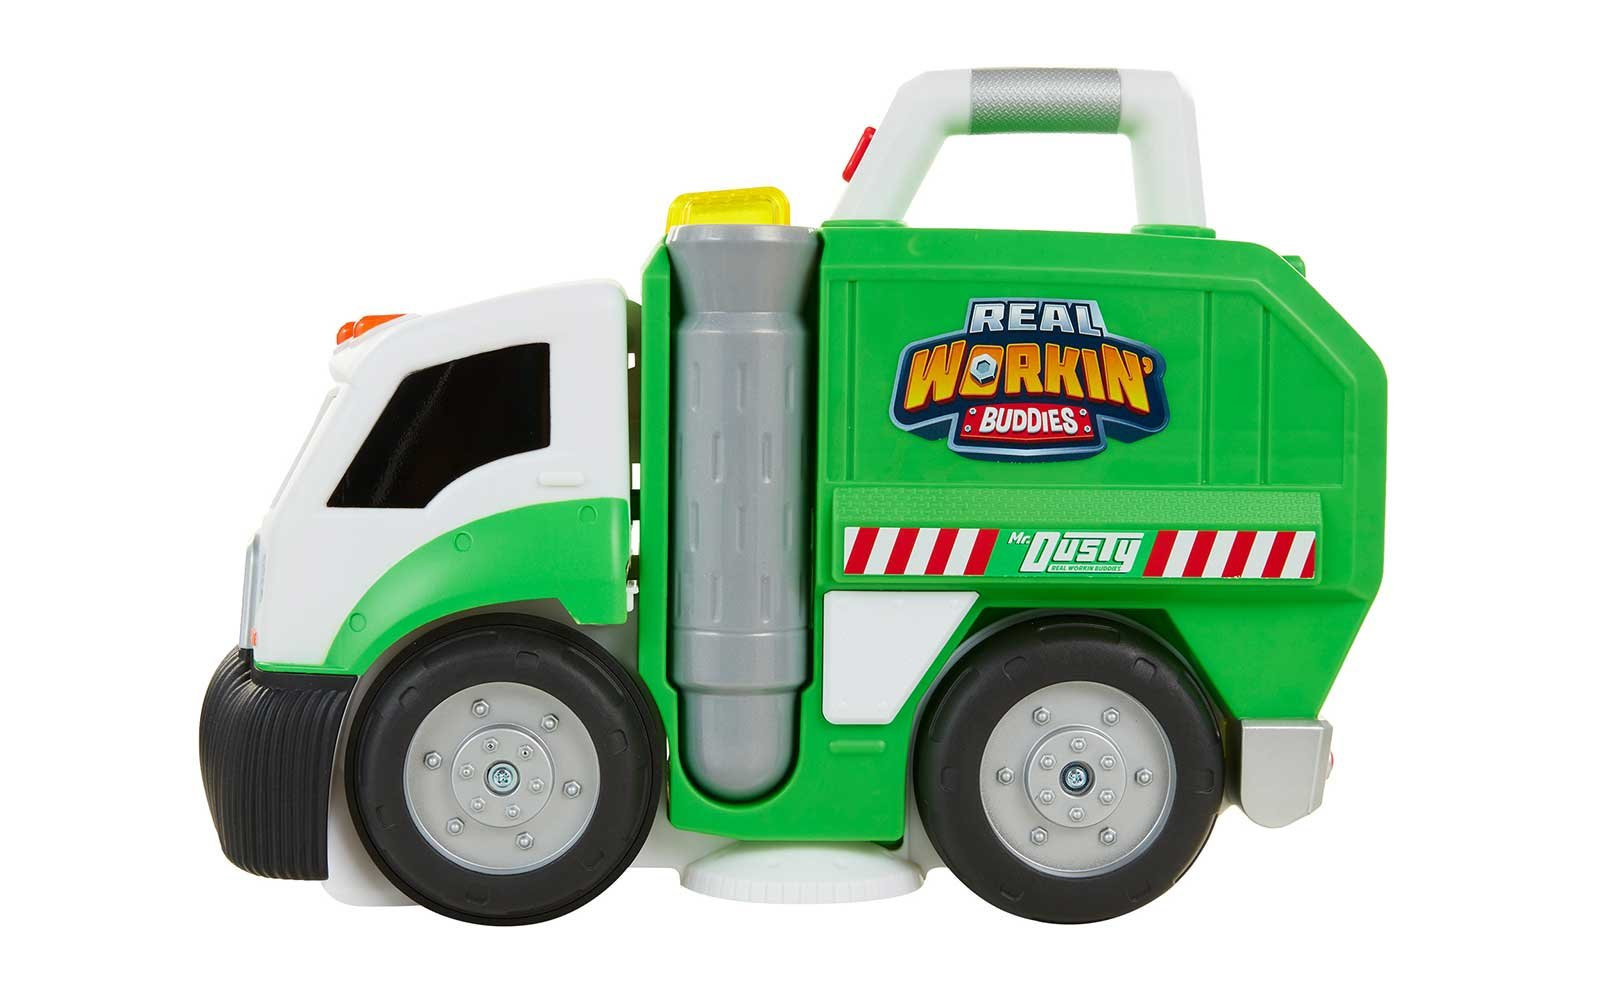 Dusty the Super Duper Garbage Truck